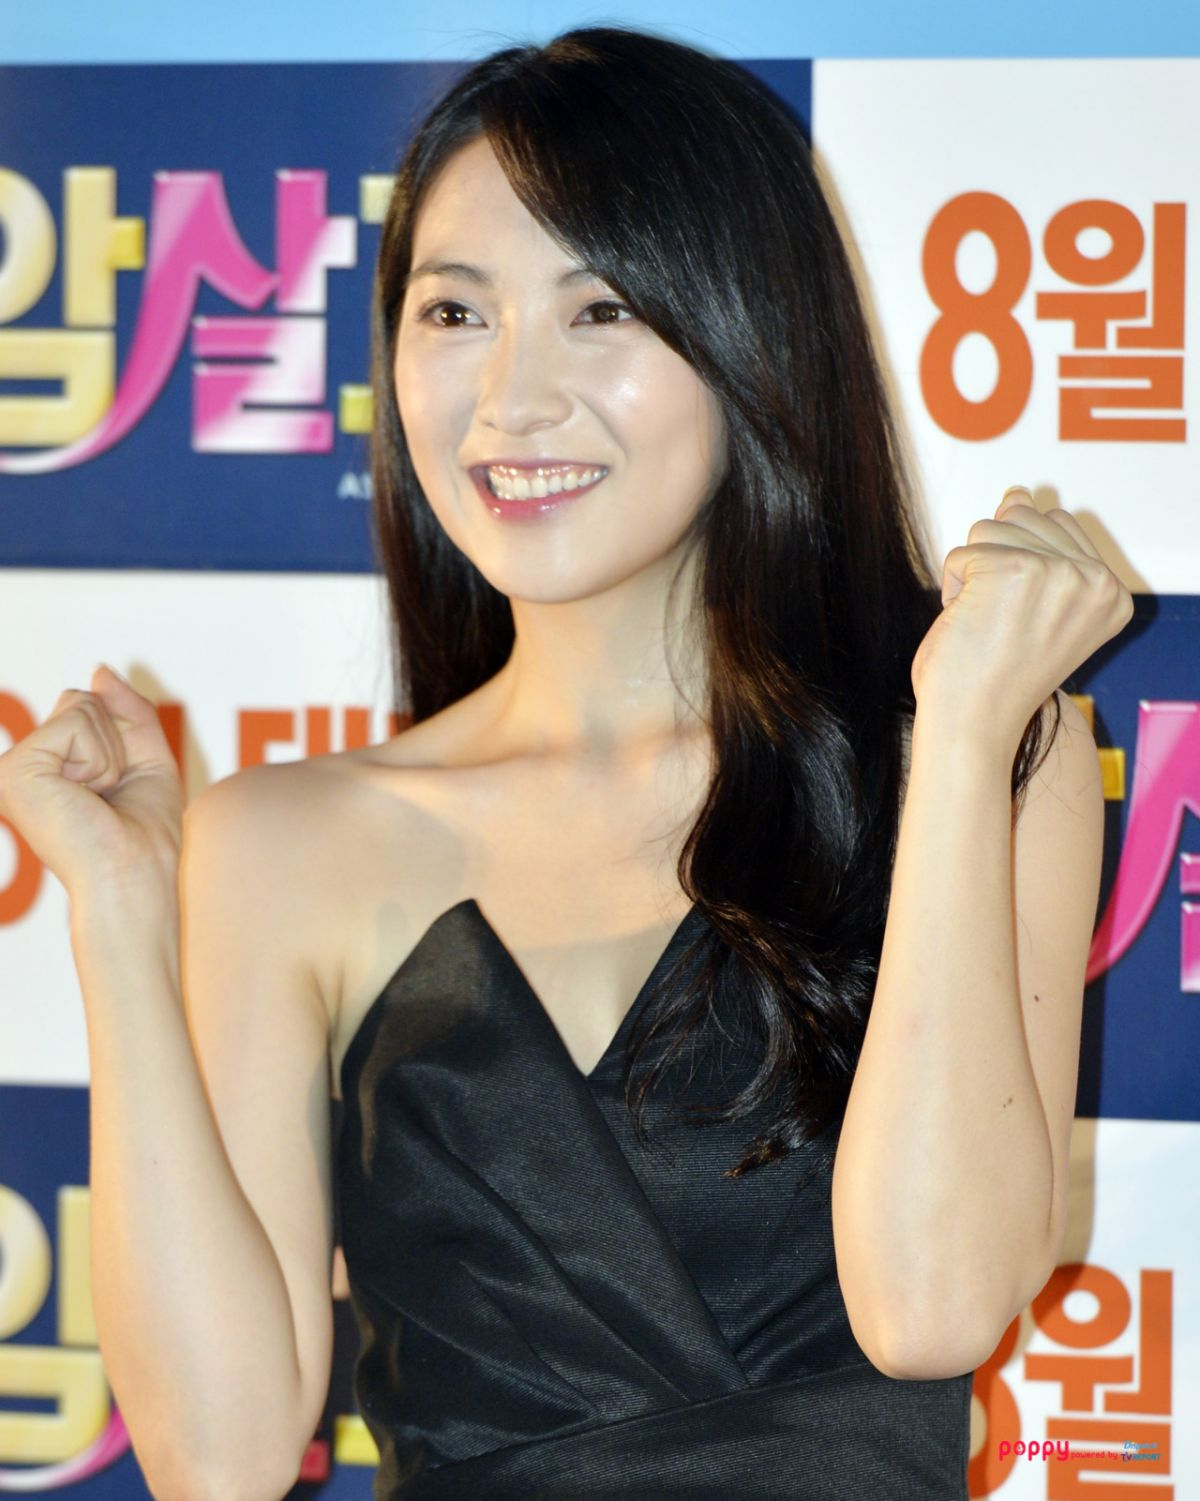 KANG JI YOUNG at Assassination Classroom Press Conference in Seoul 08/17/2015